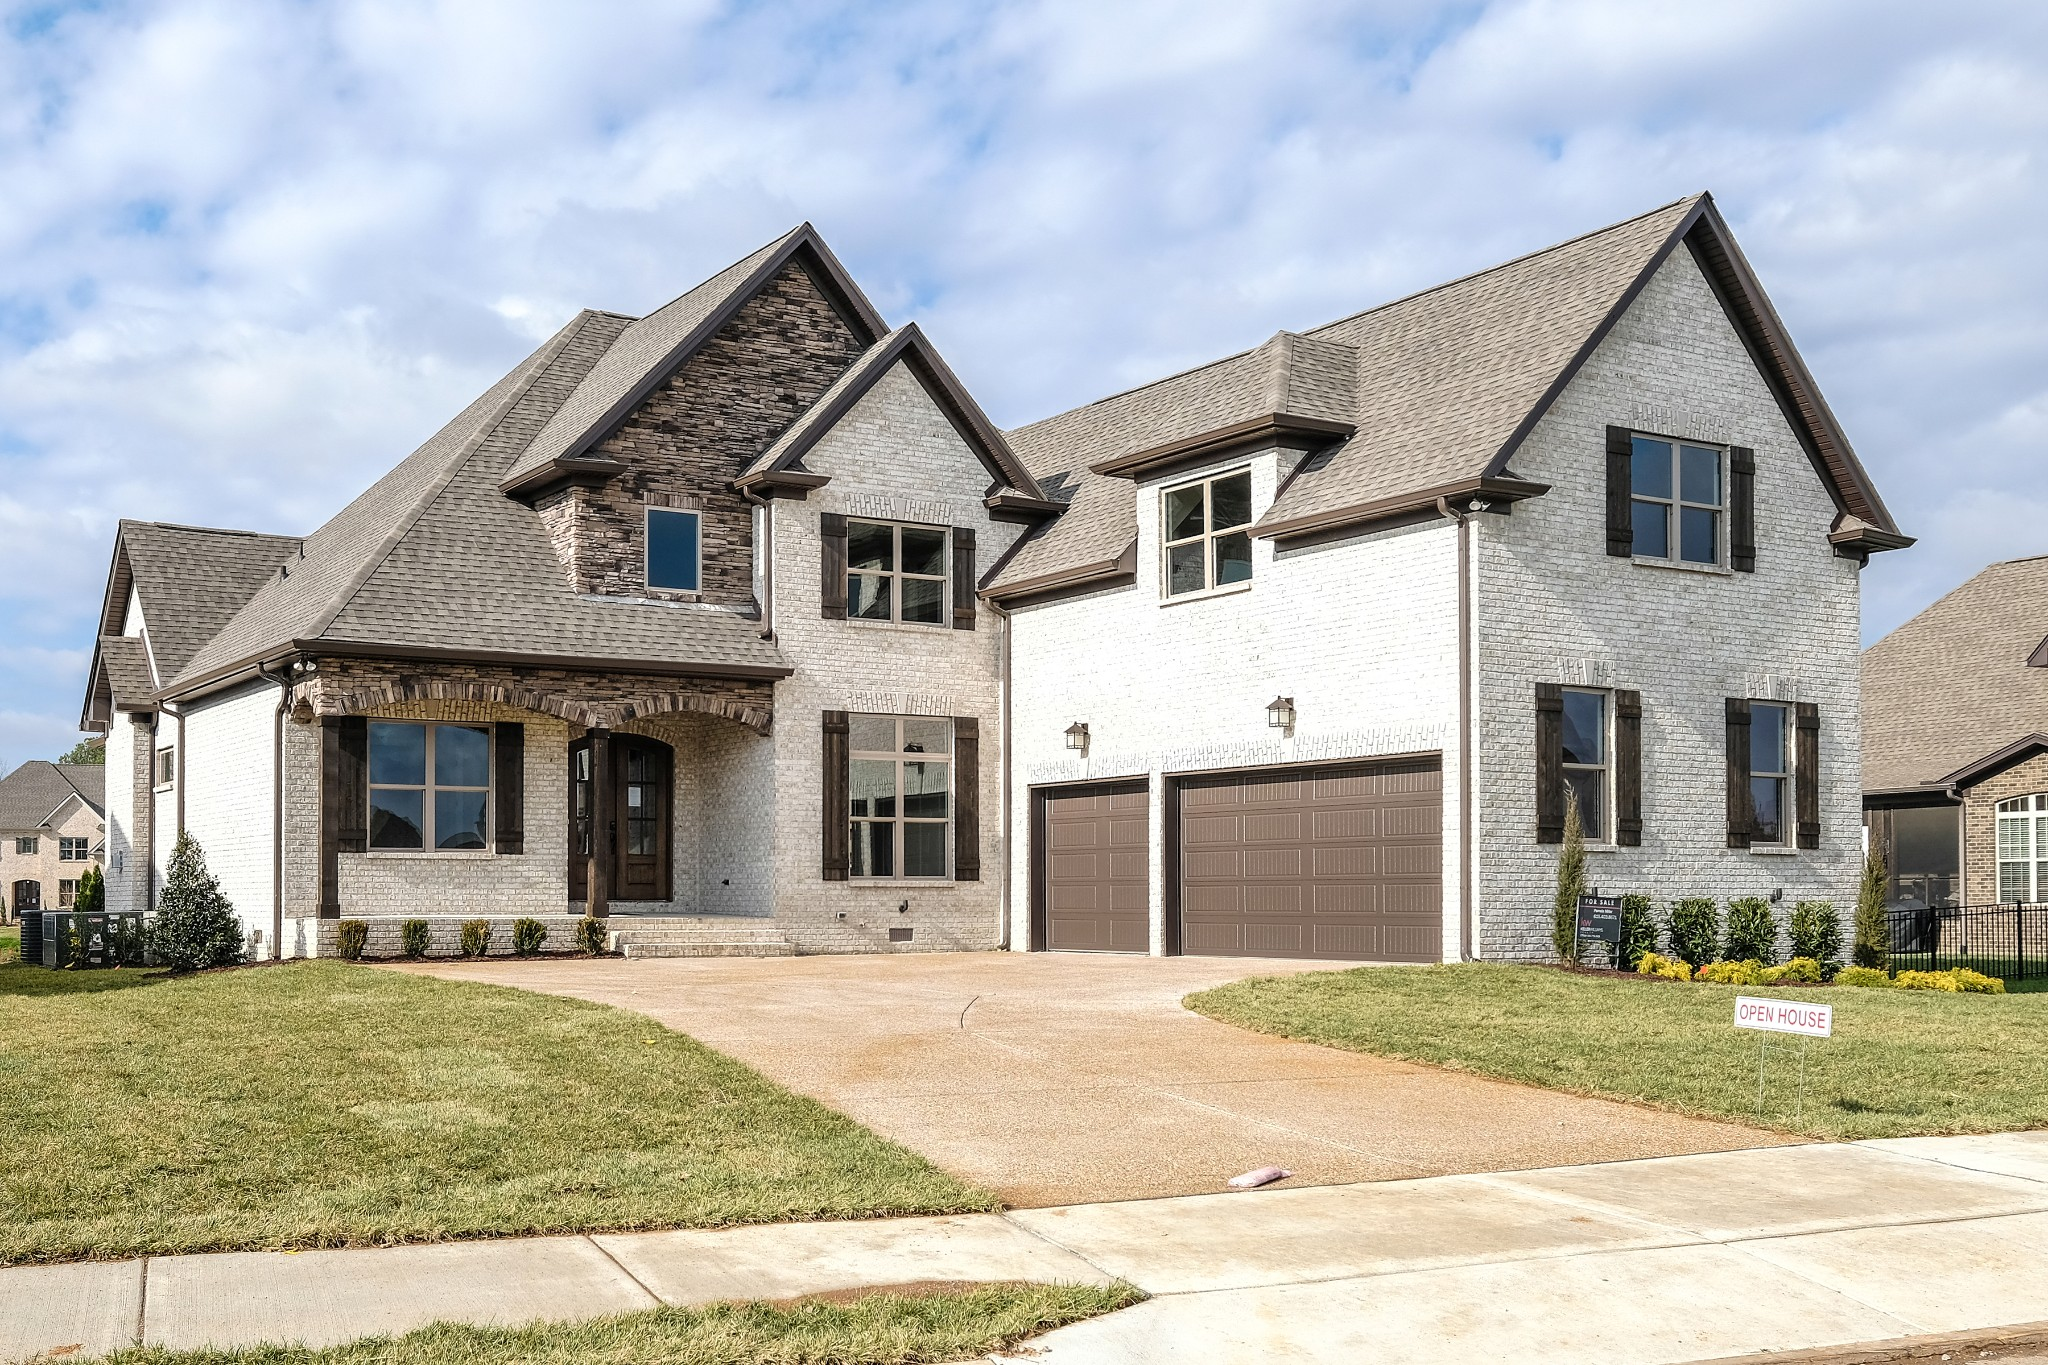 6022 Trout Lane (Lot 254), Spring Hill, TN 37174 - Spring Hill, TN real estate listing